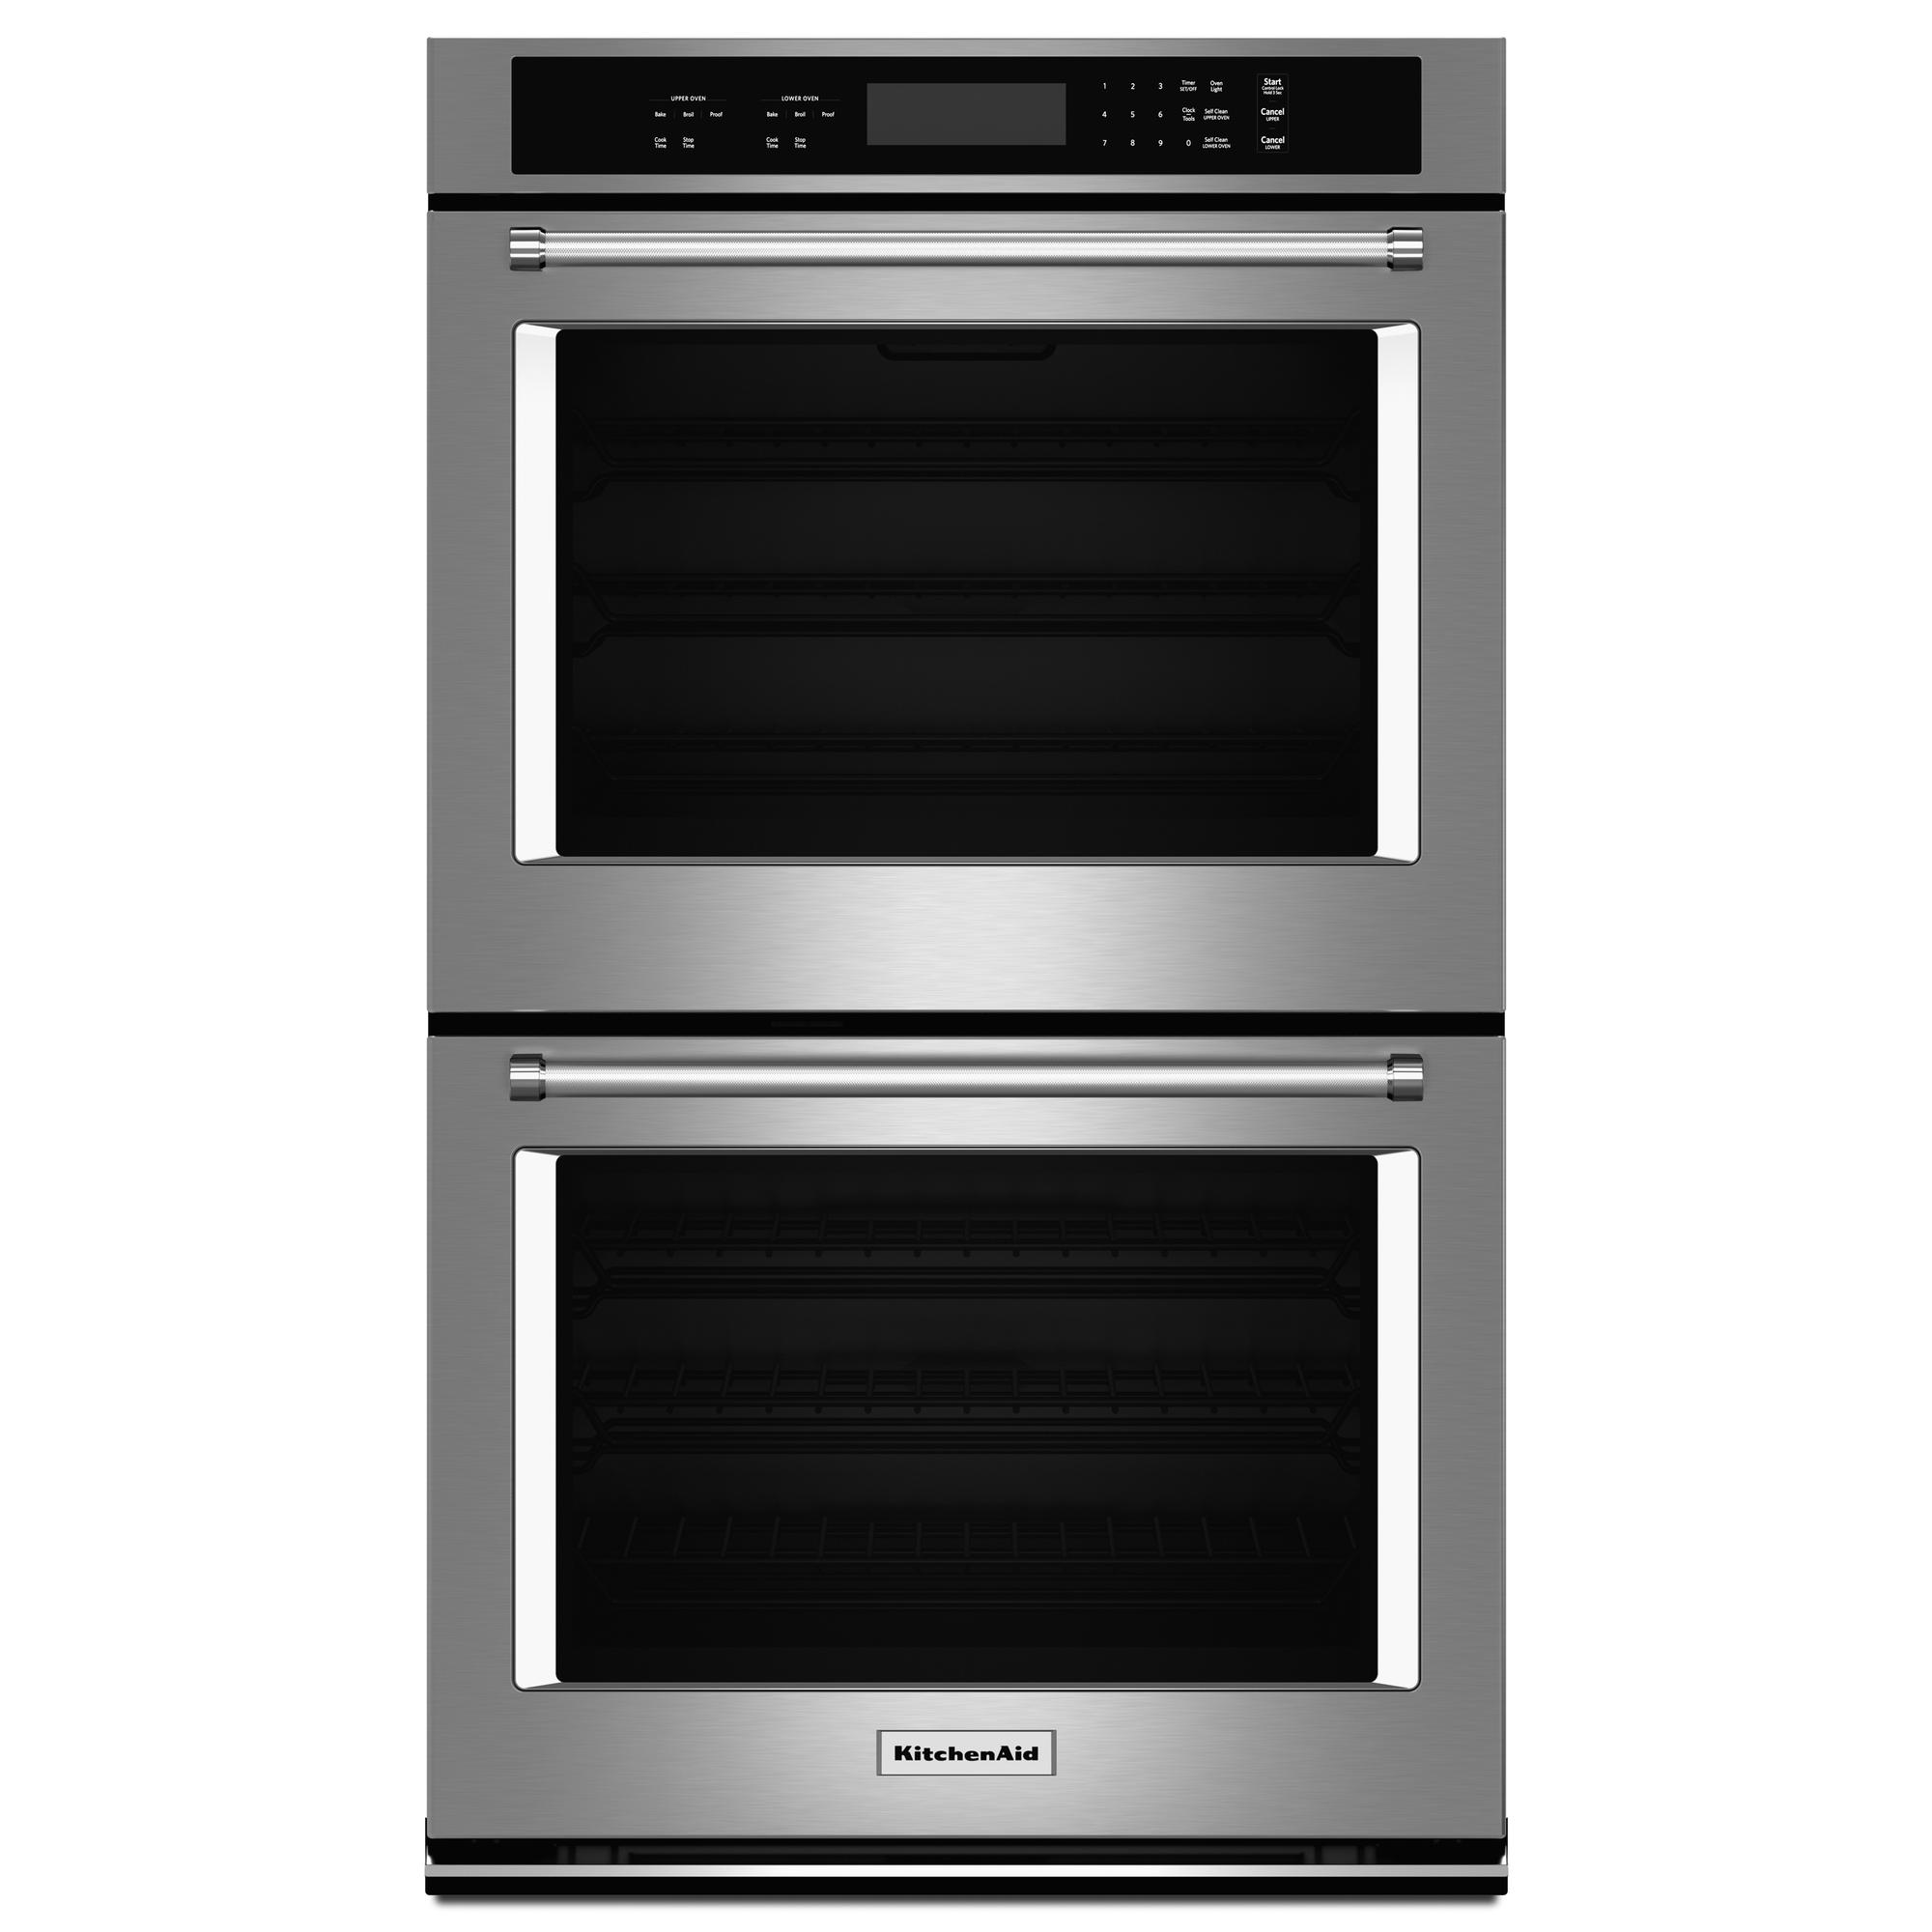 KitchenAid 4.3 cu. ft. (Each) Double Wall Oven w/ Even-Heat™ Thermal Bake/Broil - Stainless Steel